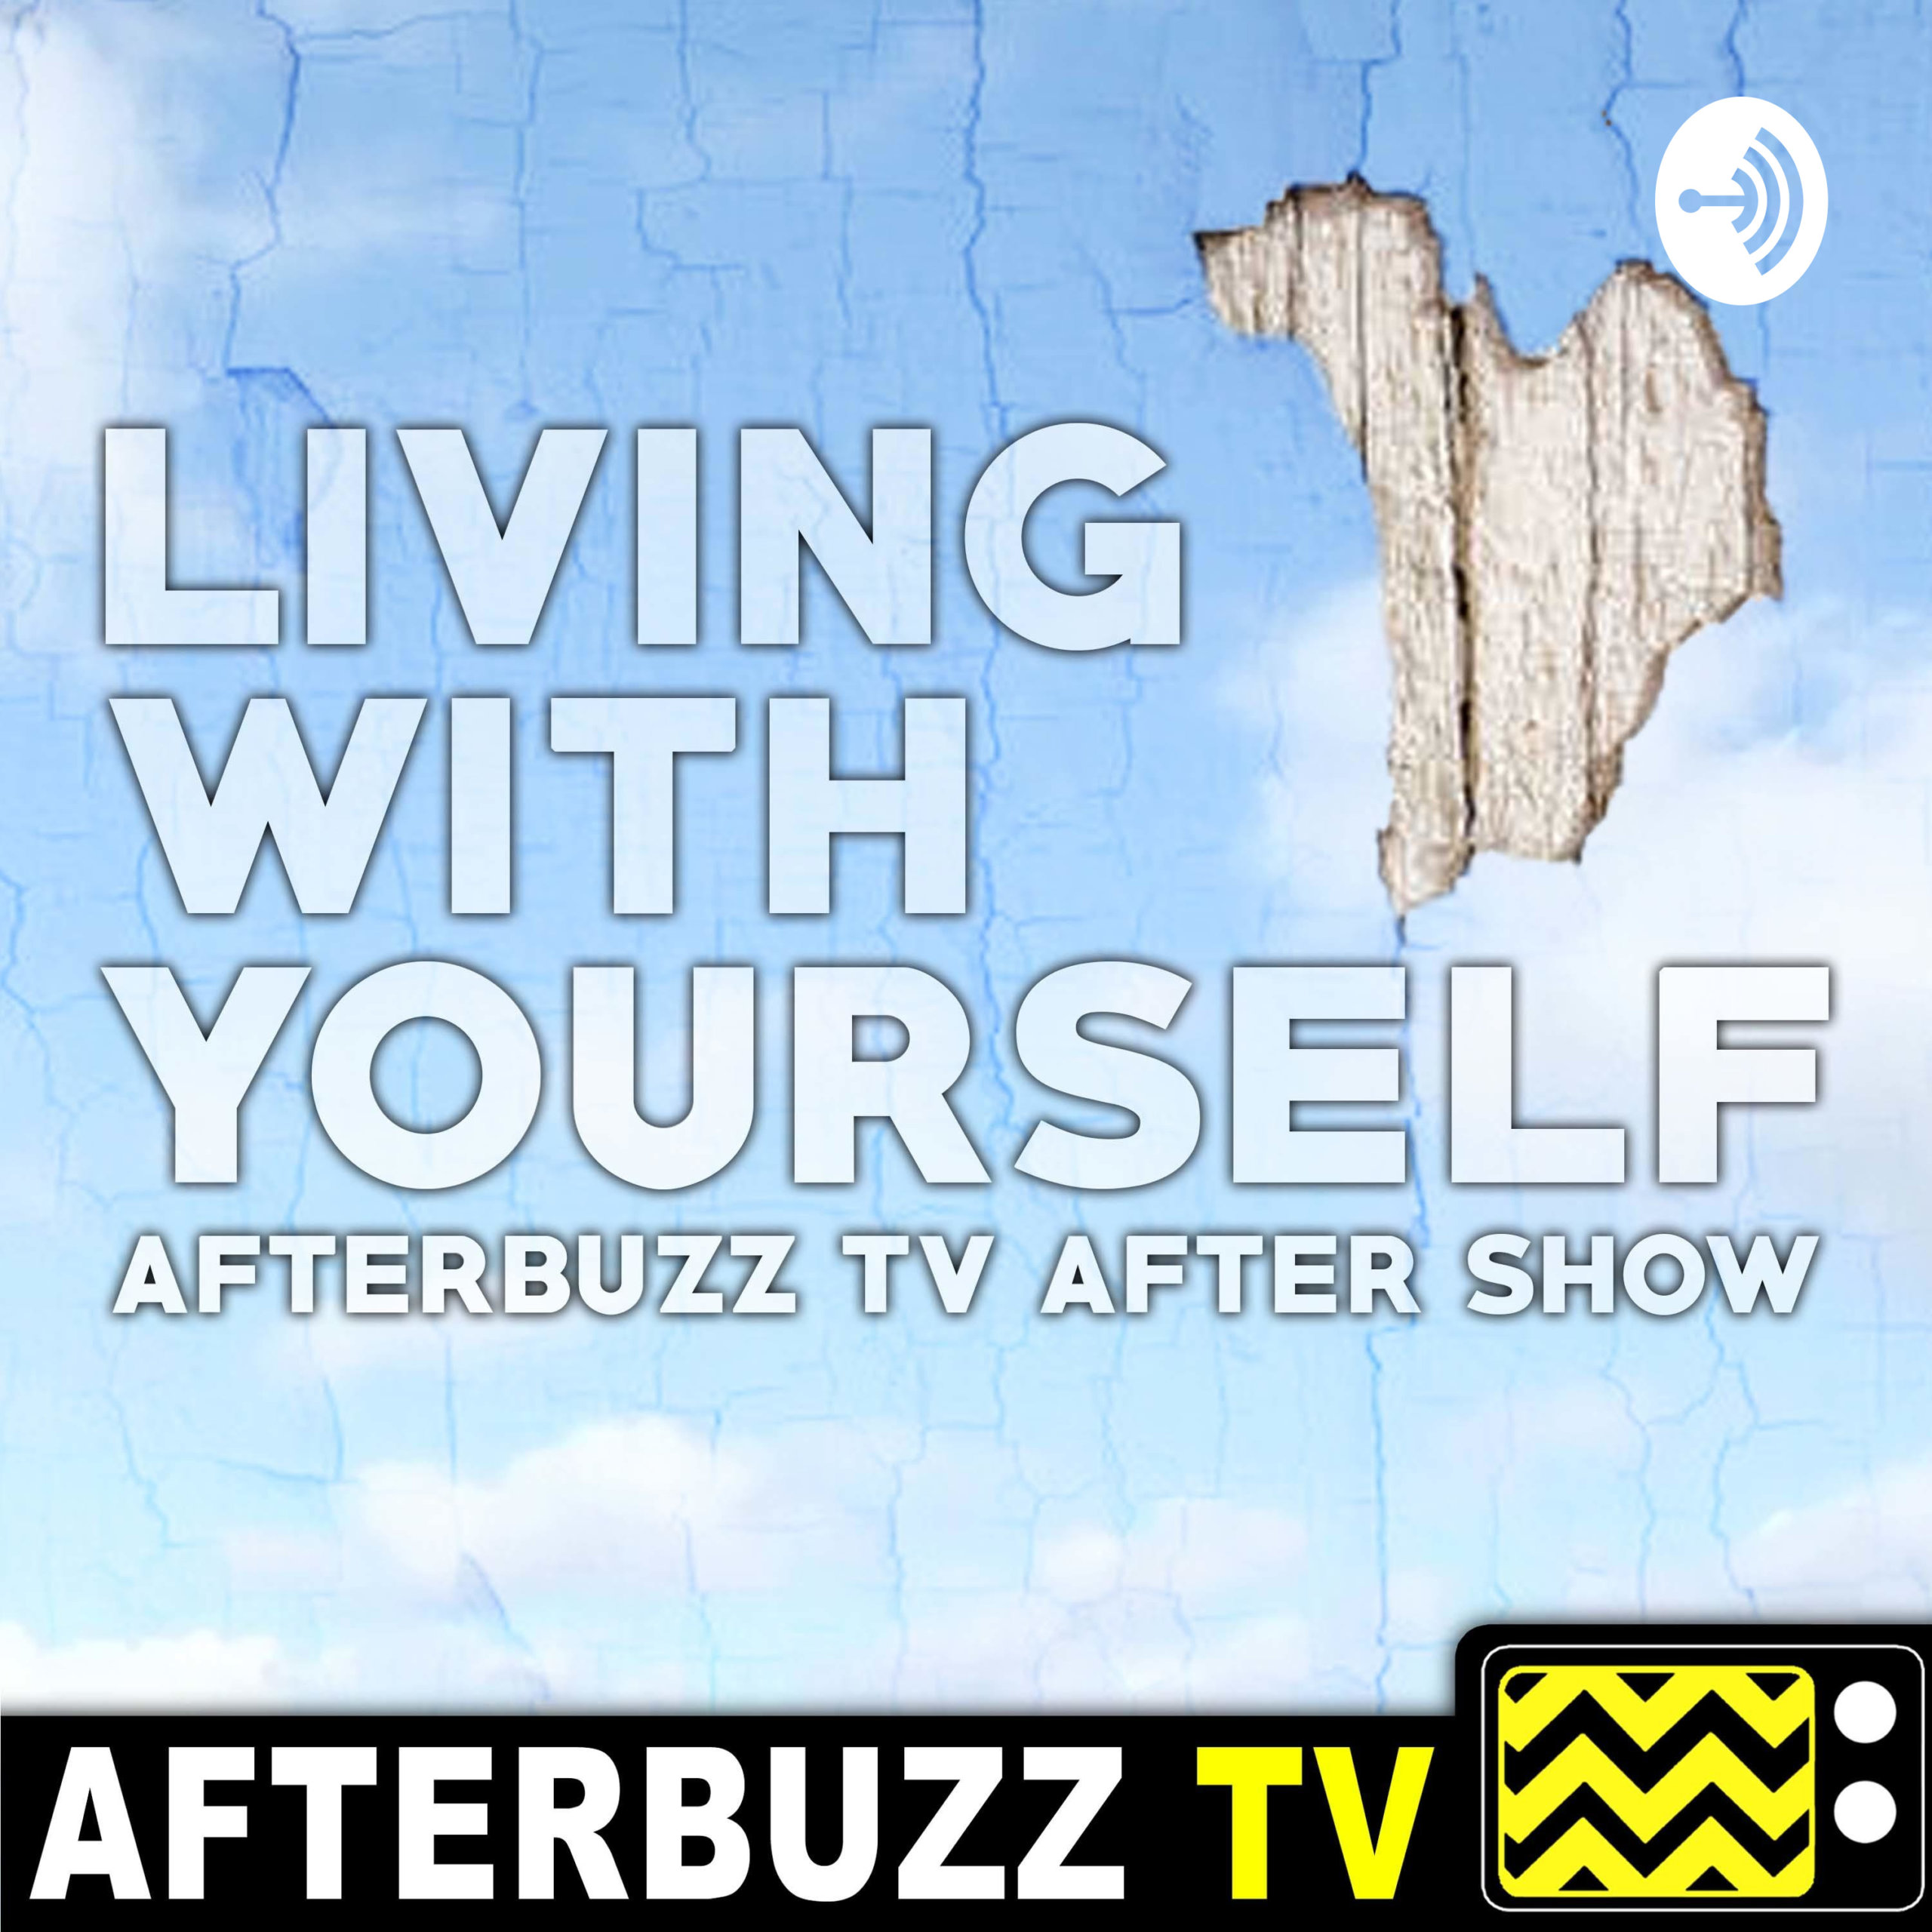 The Living With Yourself Podcast